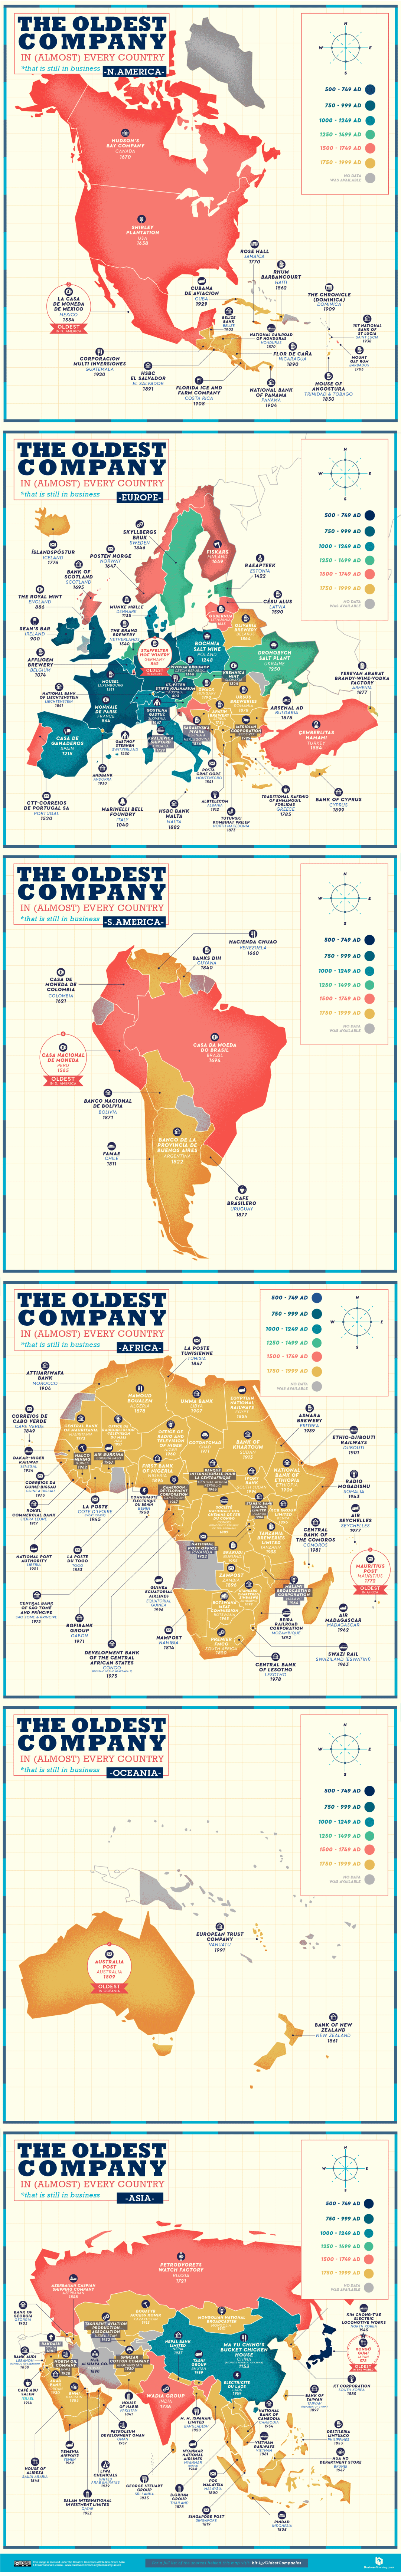 oldest companies in the world